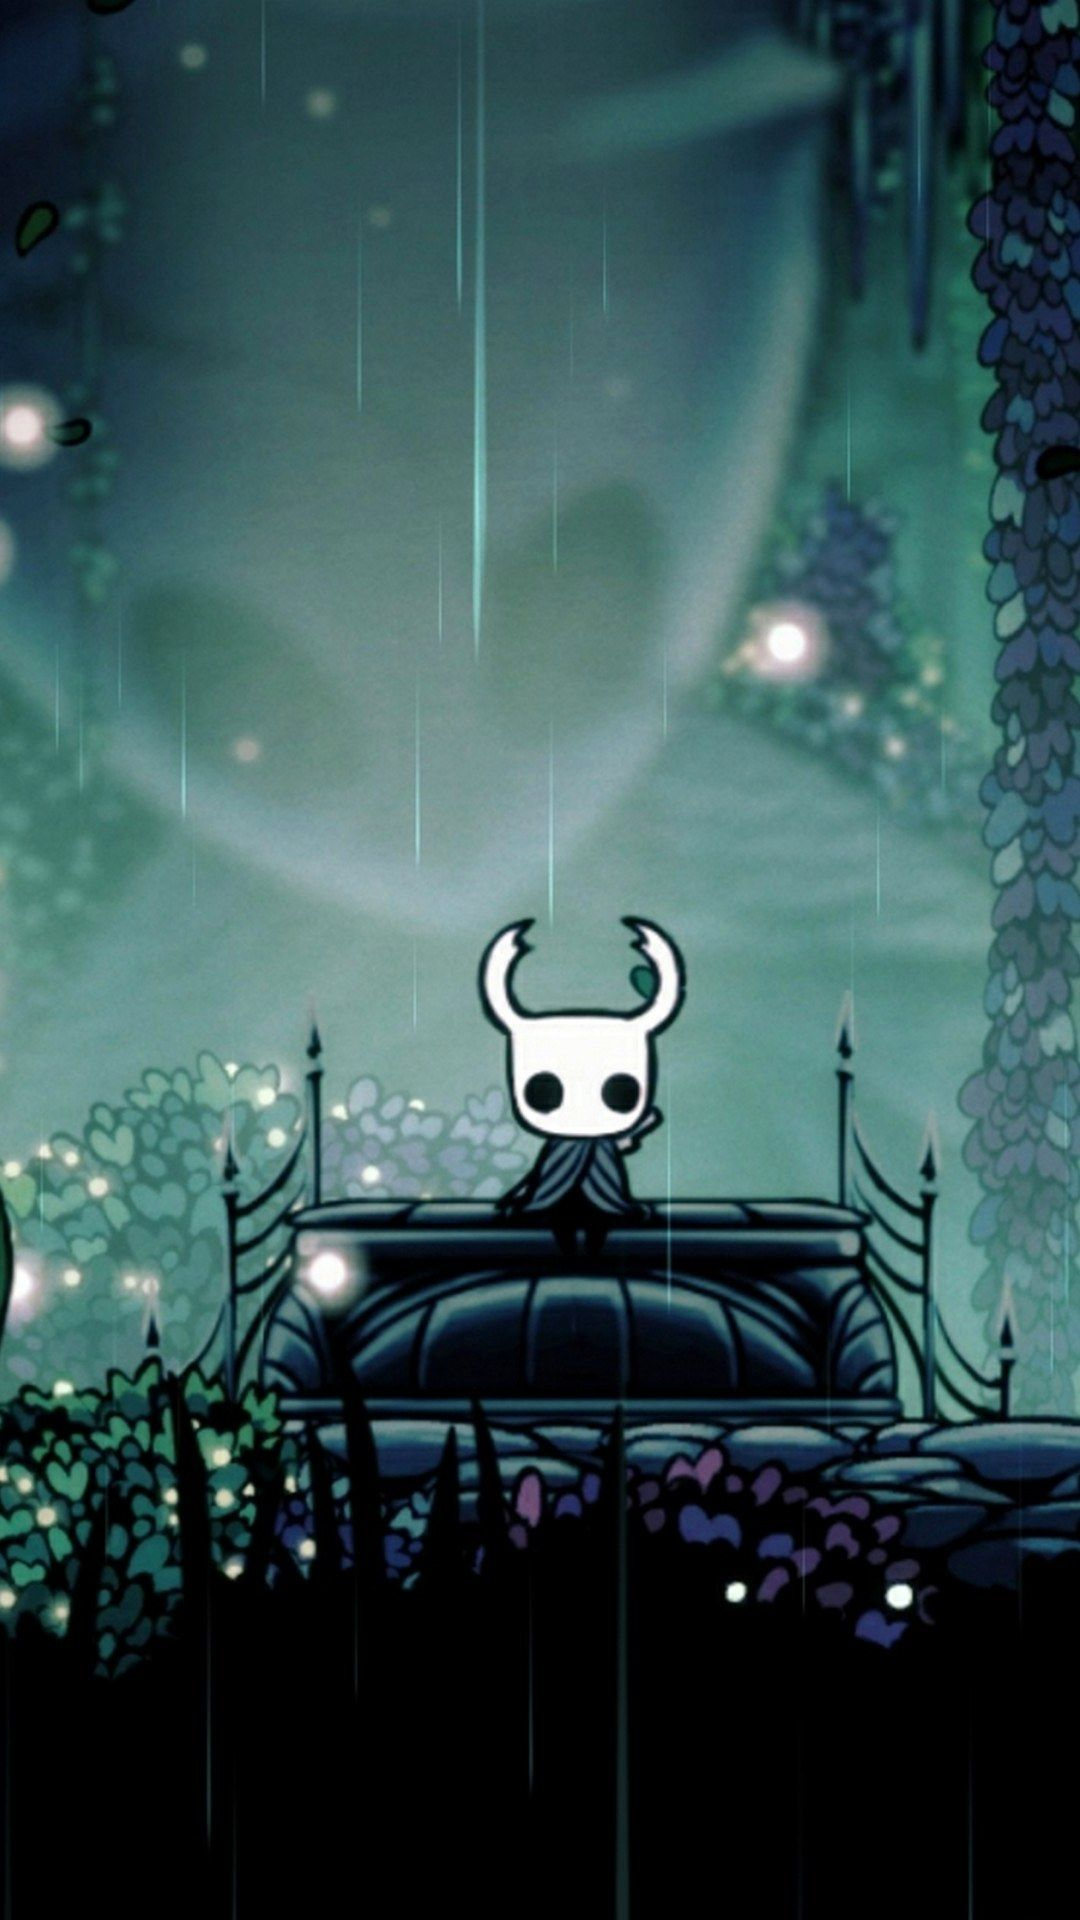 Hollow Knight Gameplay Wallpaper For Iphone Hd Iphone Wallpaper Wallpaper Android Wallpaper